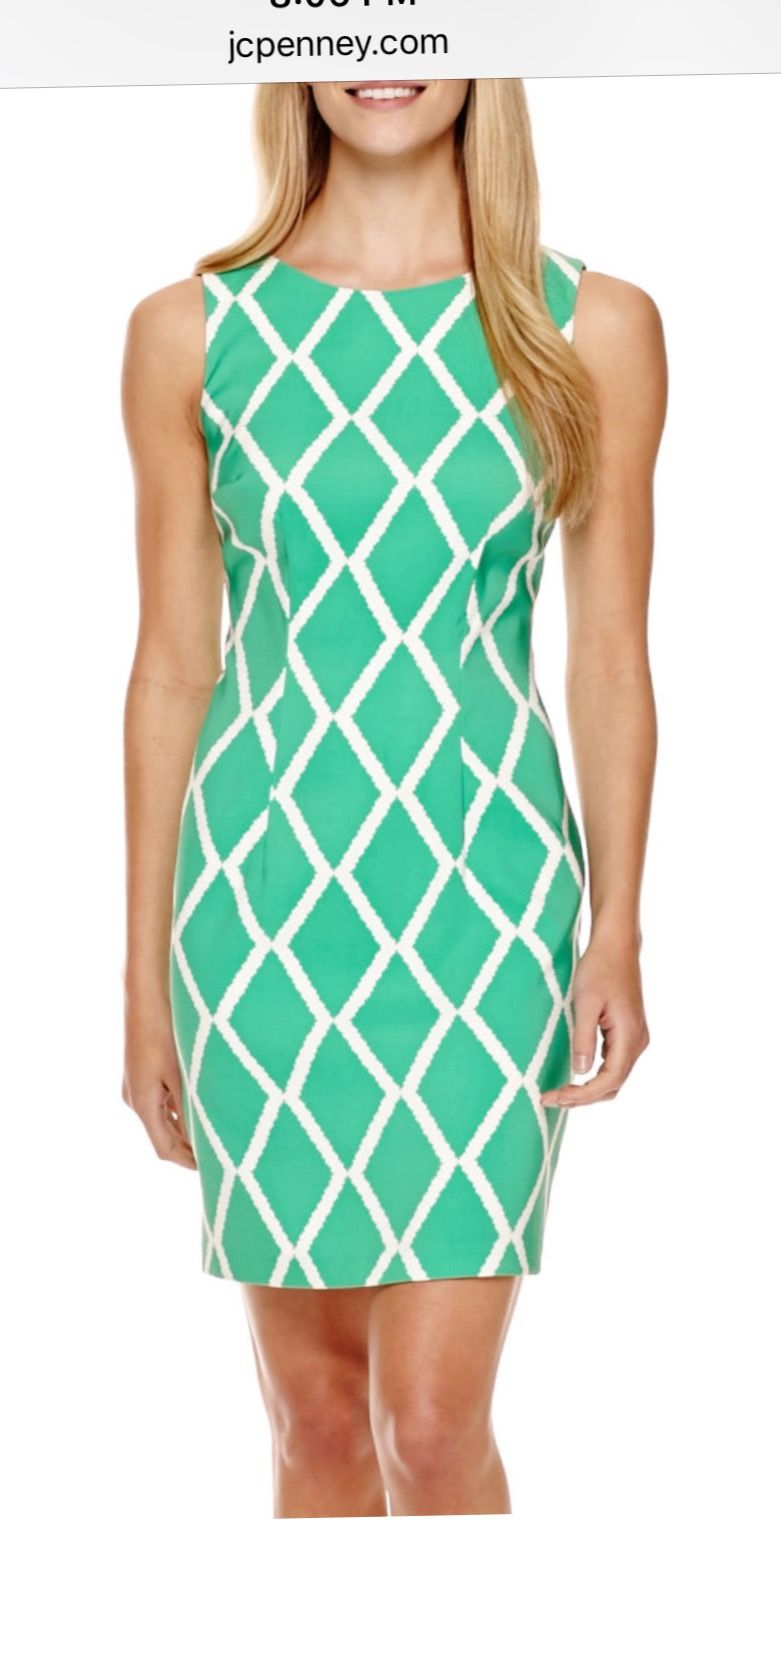 JCPenney Casual Dresses – Fashion dresses